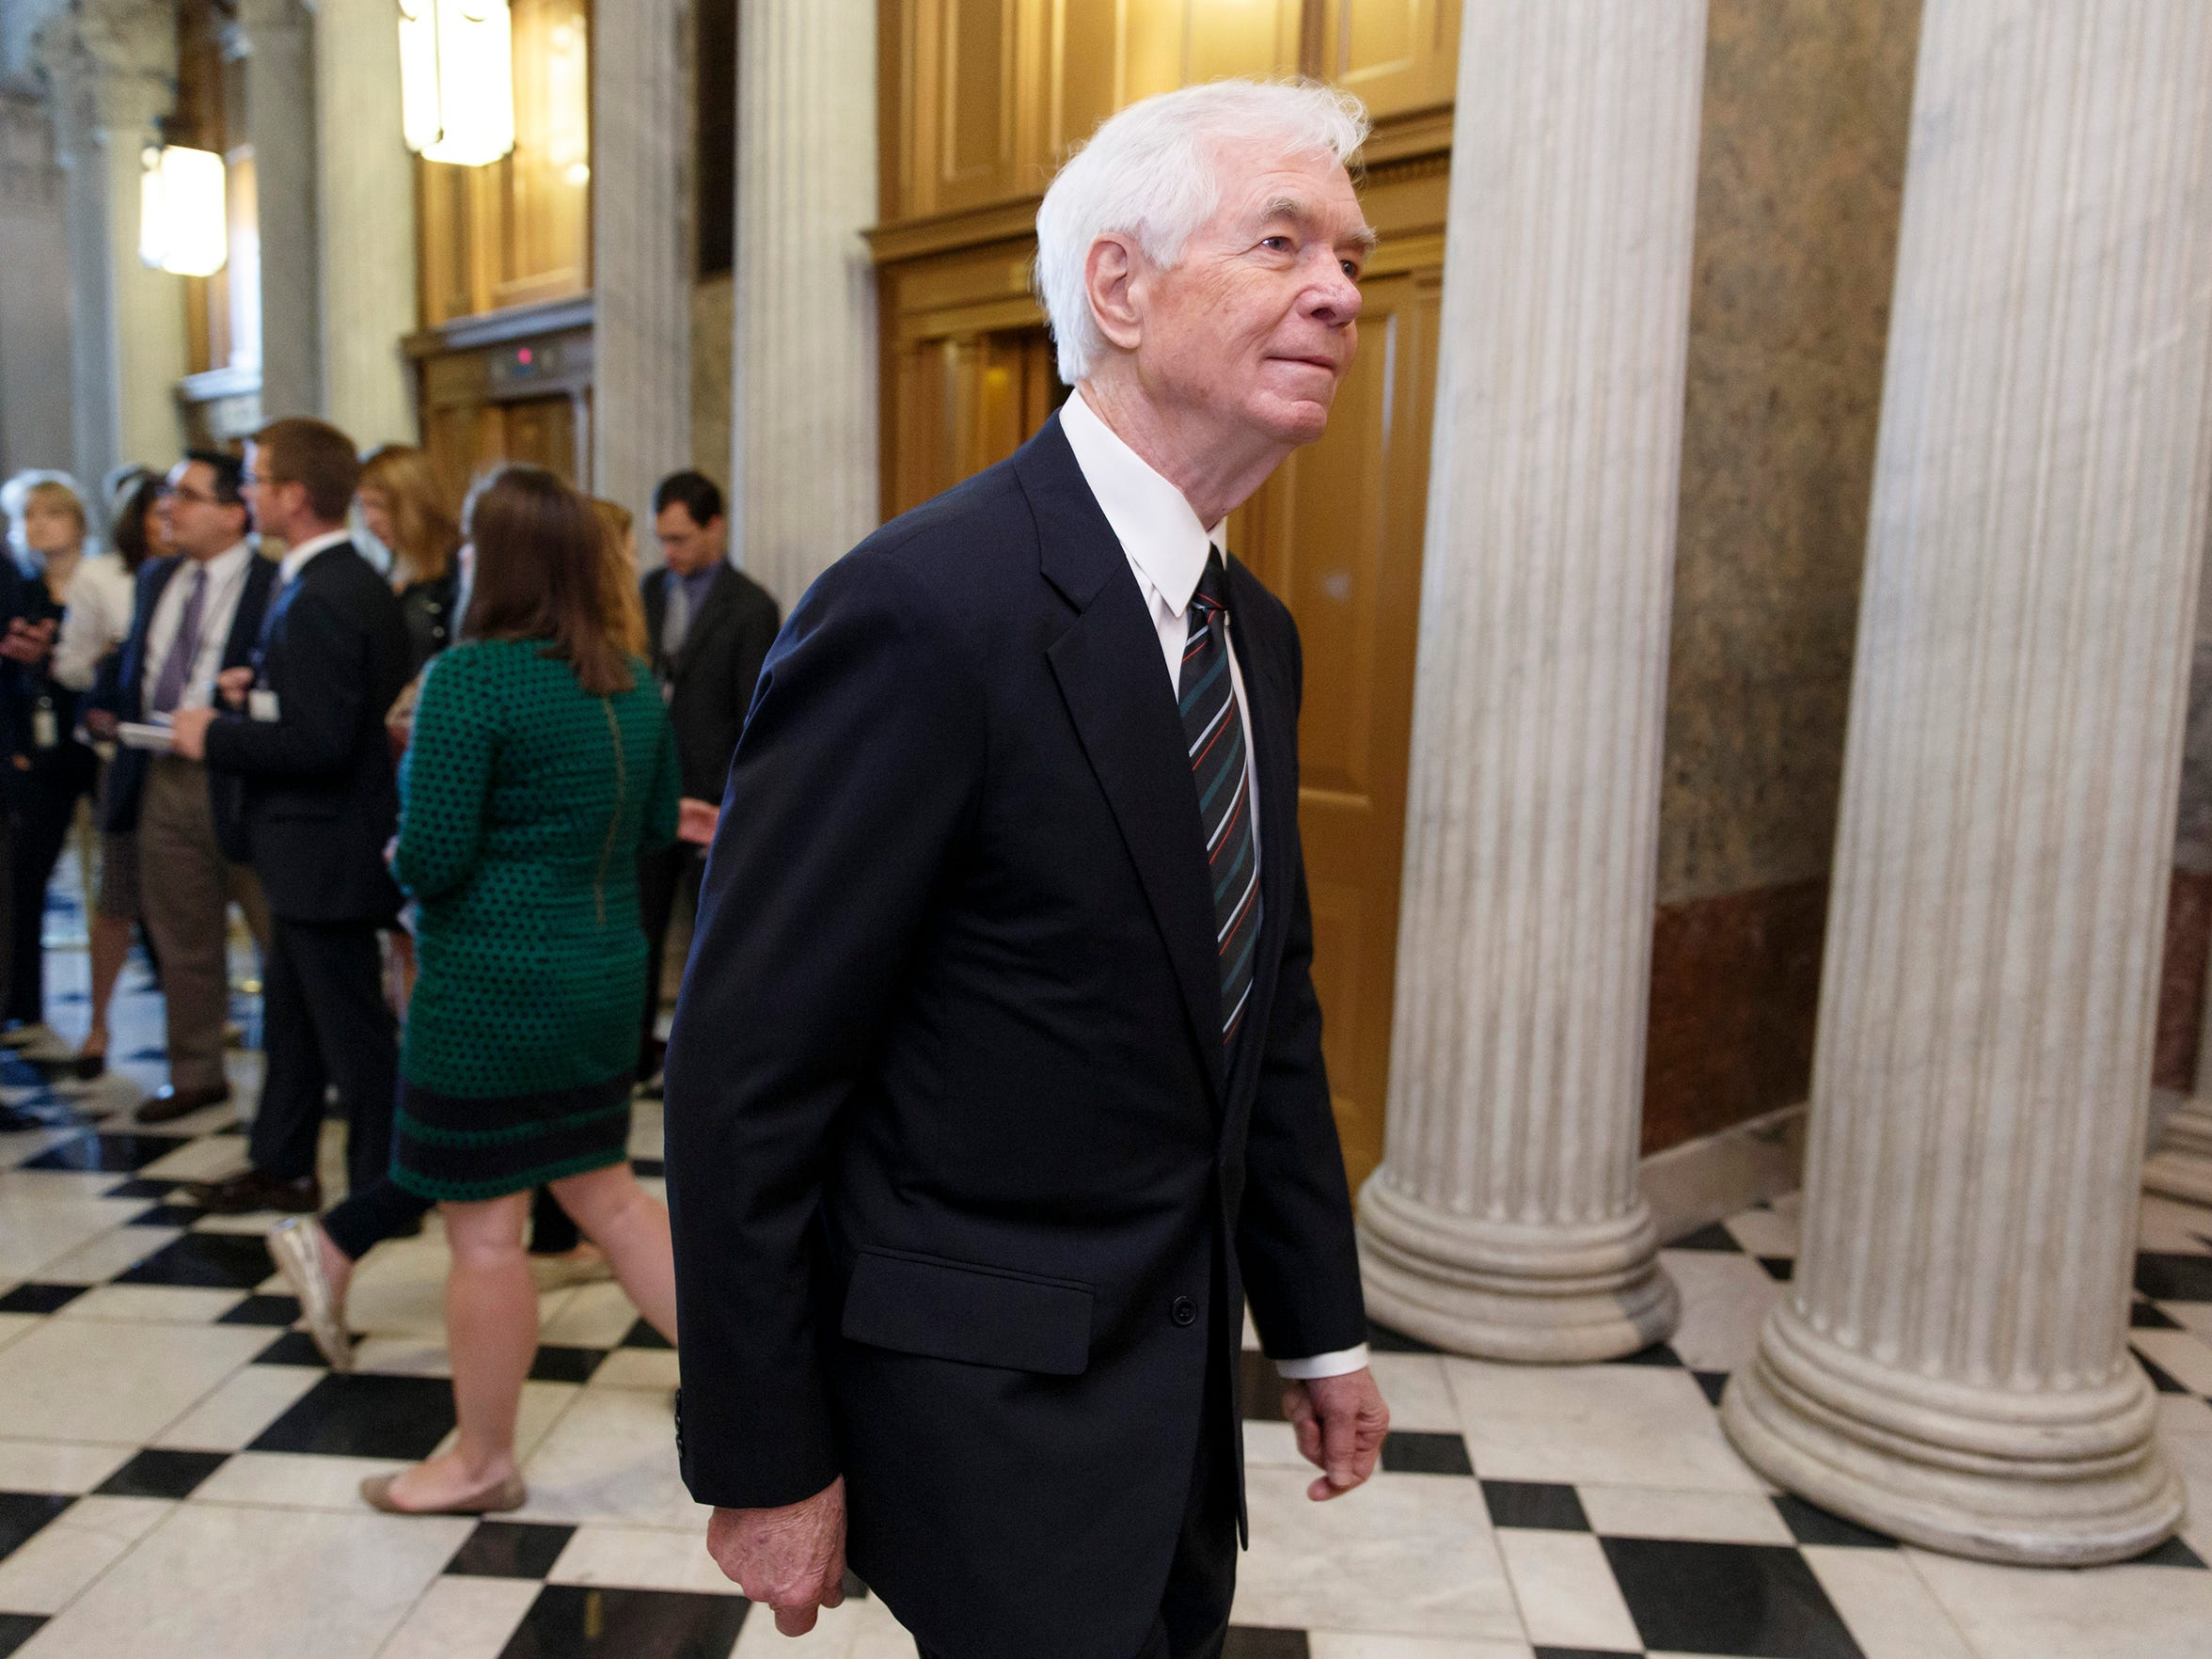 Sen. Thad Cochran, R-Miss., arrives at the Senate chamber